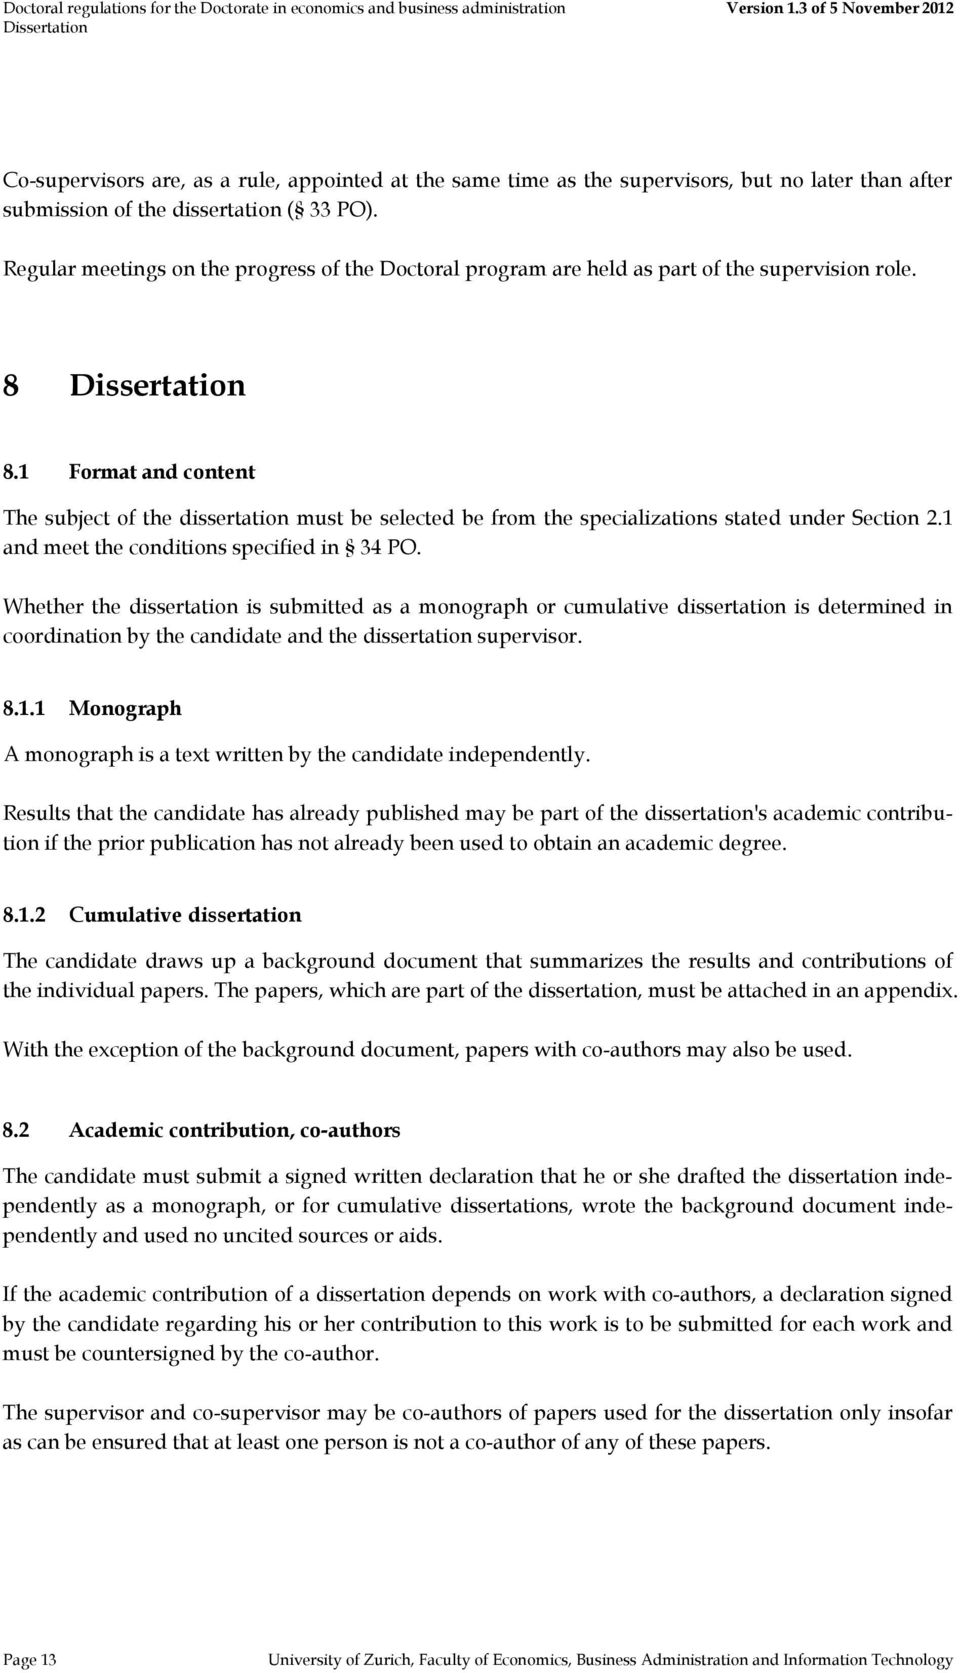 1 Format and content The subject of the dissertation must be selected be from the specializations stated under Section 2.1 and meet the conditions specified in 34 PO.